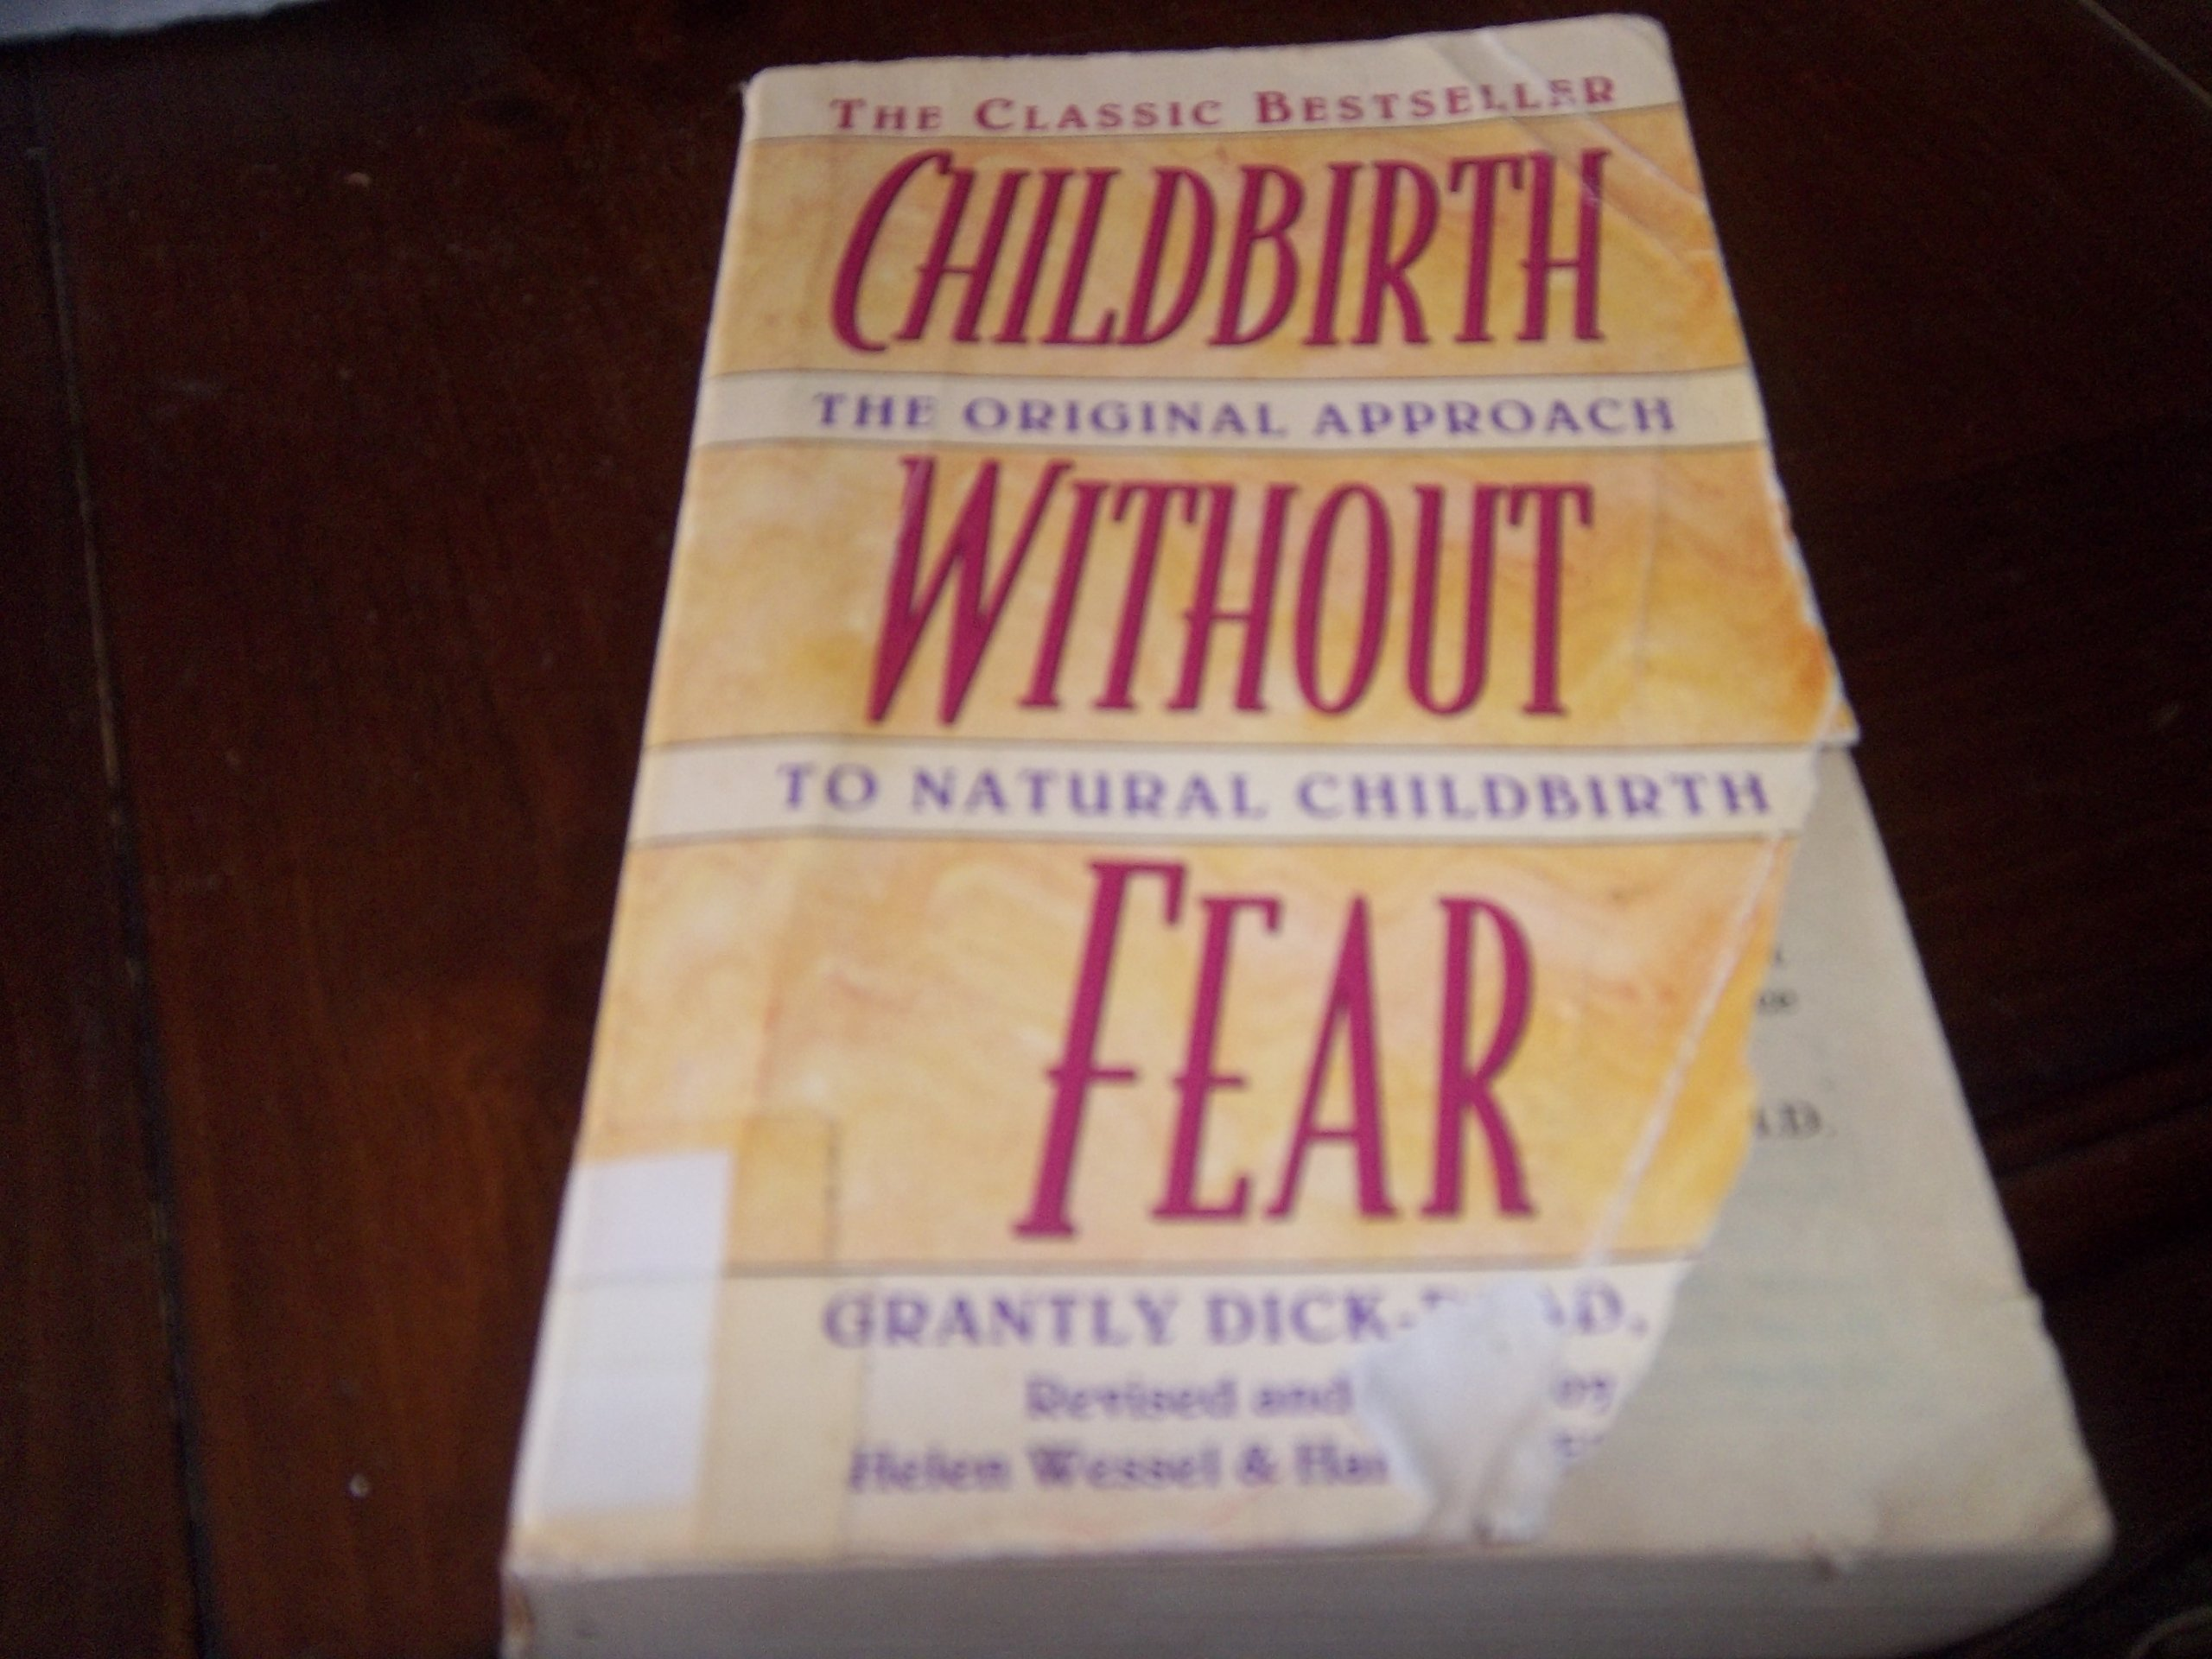 Learning to breathe according to the book of Grantley Dick-Read. Childbirth without fear